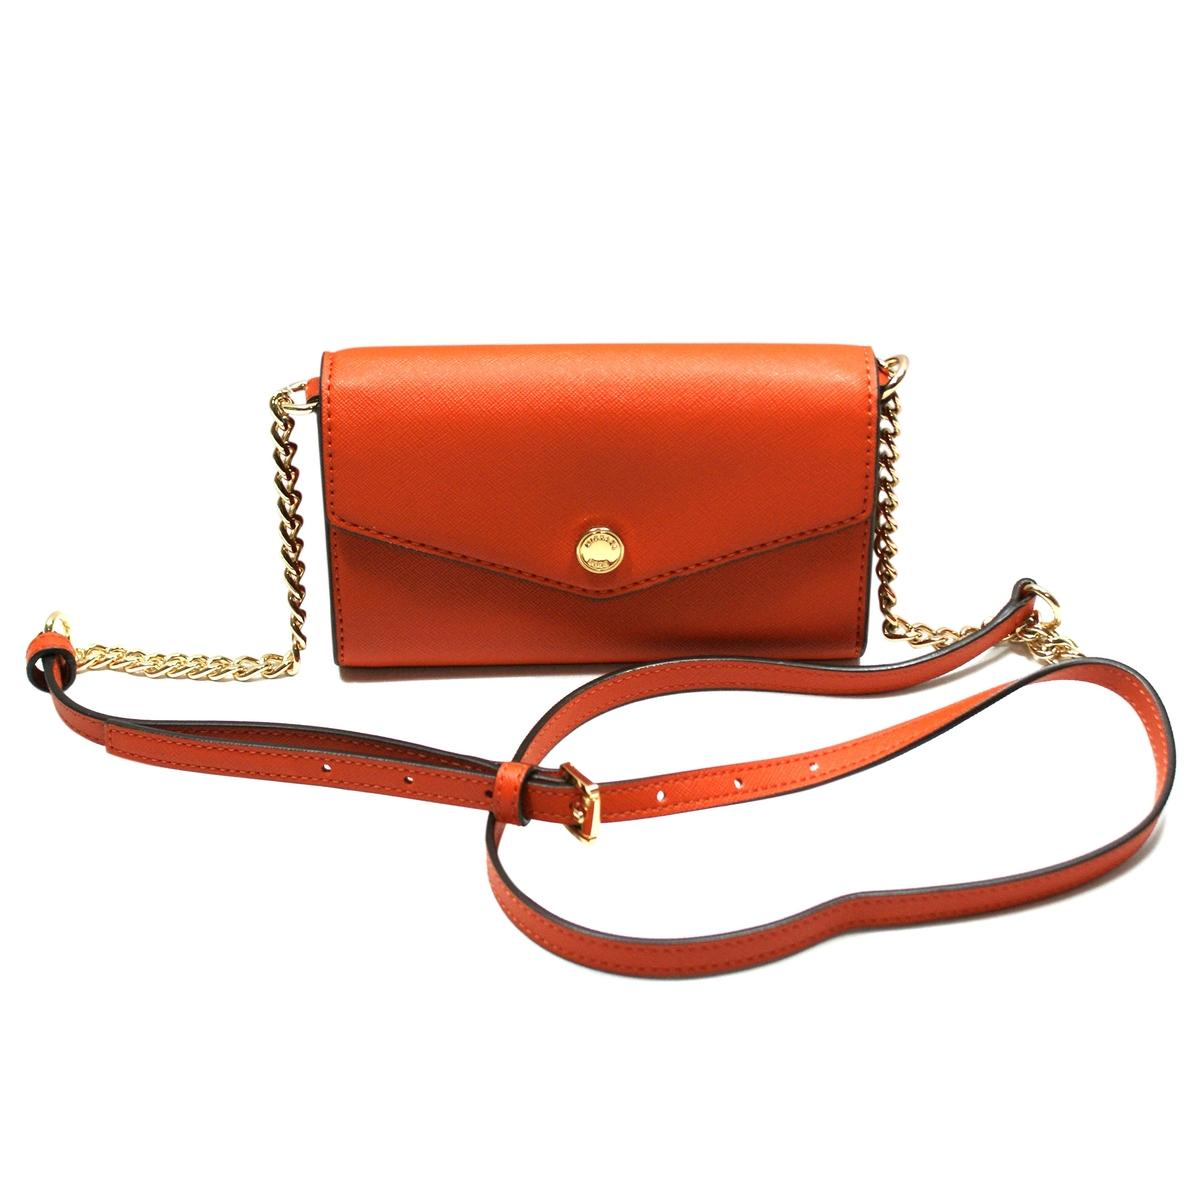 Buy Handbags On Sale and Clearance at Macy's and get FREE SHIPPING with $99 purchase! Shop a great selection of accessories and designer bags On Sale.